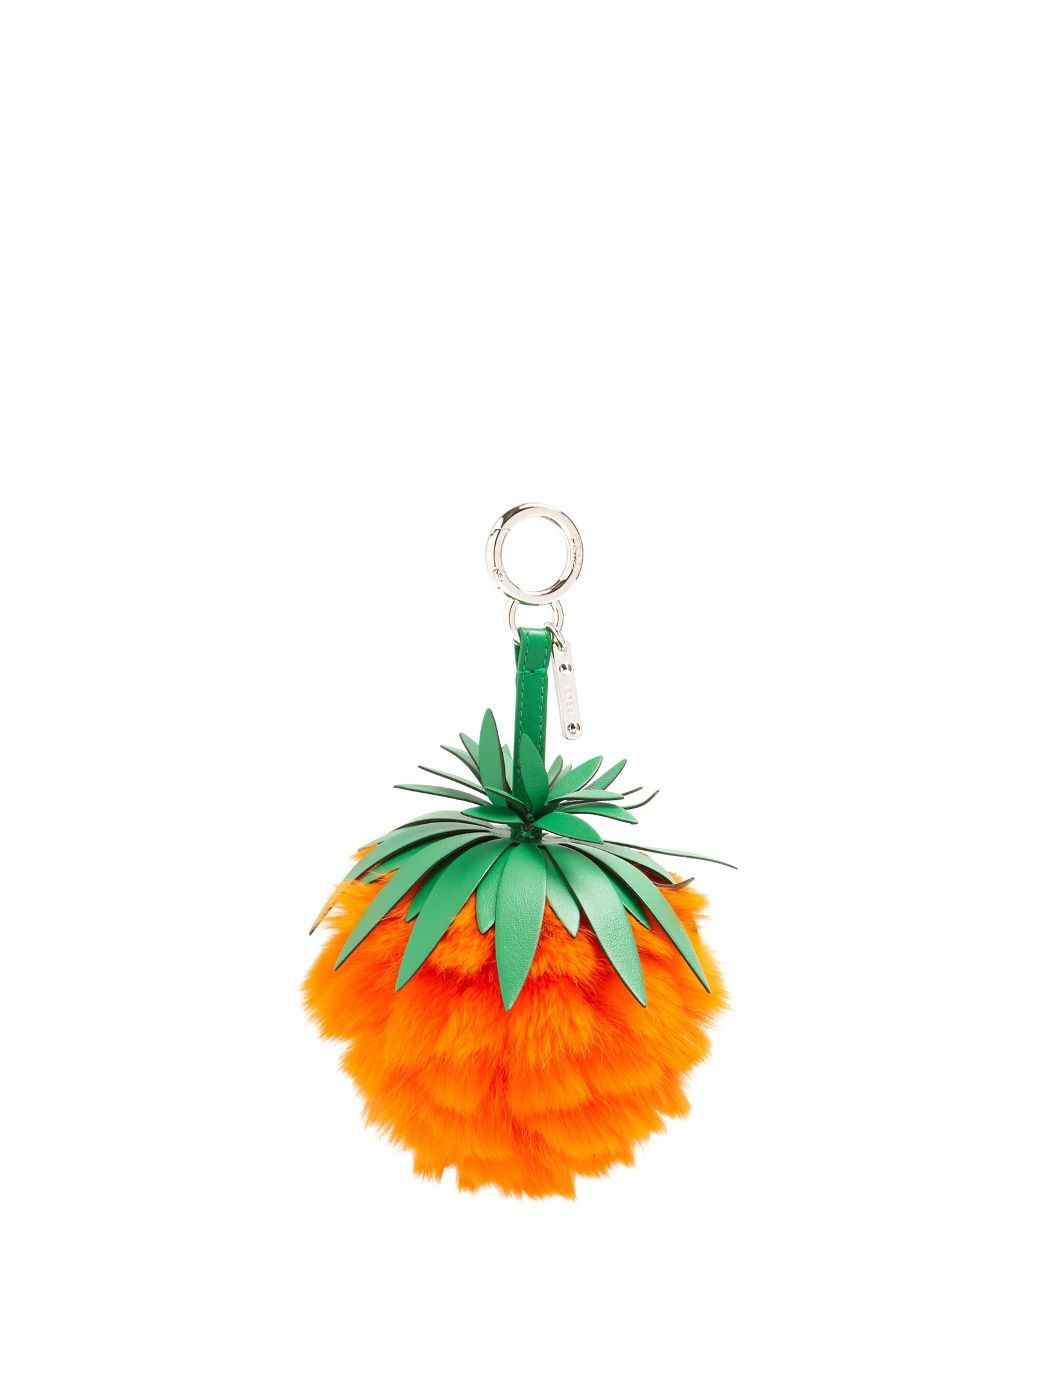 Fendi Pineapple leather and fur bag charm glSusnglOW